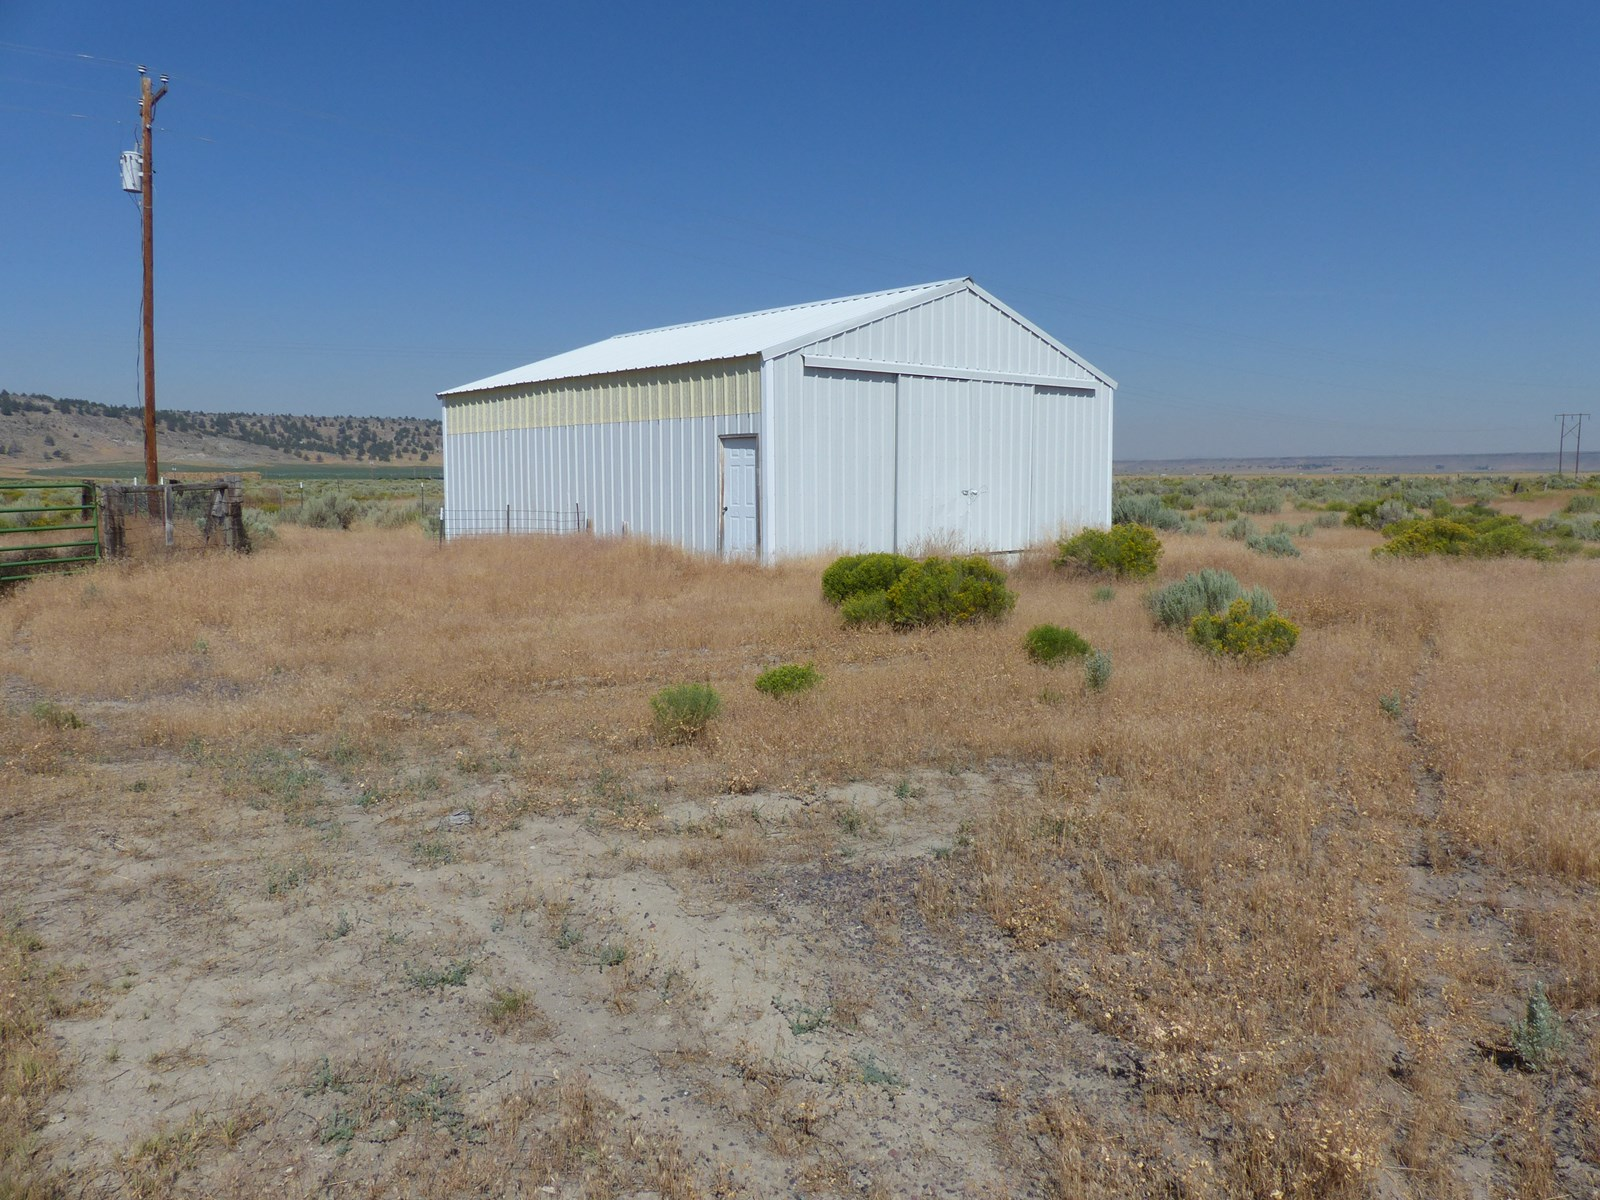 BURNS, OR - 160 ACRES WITH SHOP - FENCED - POWER CLOSE